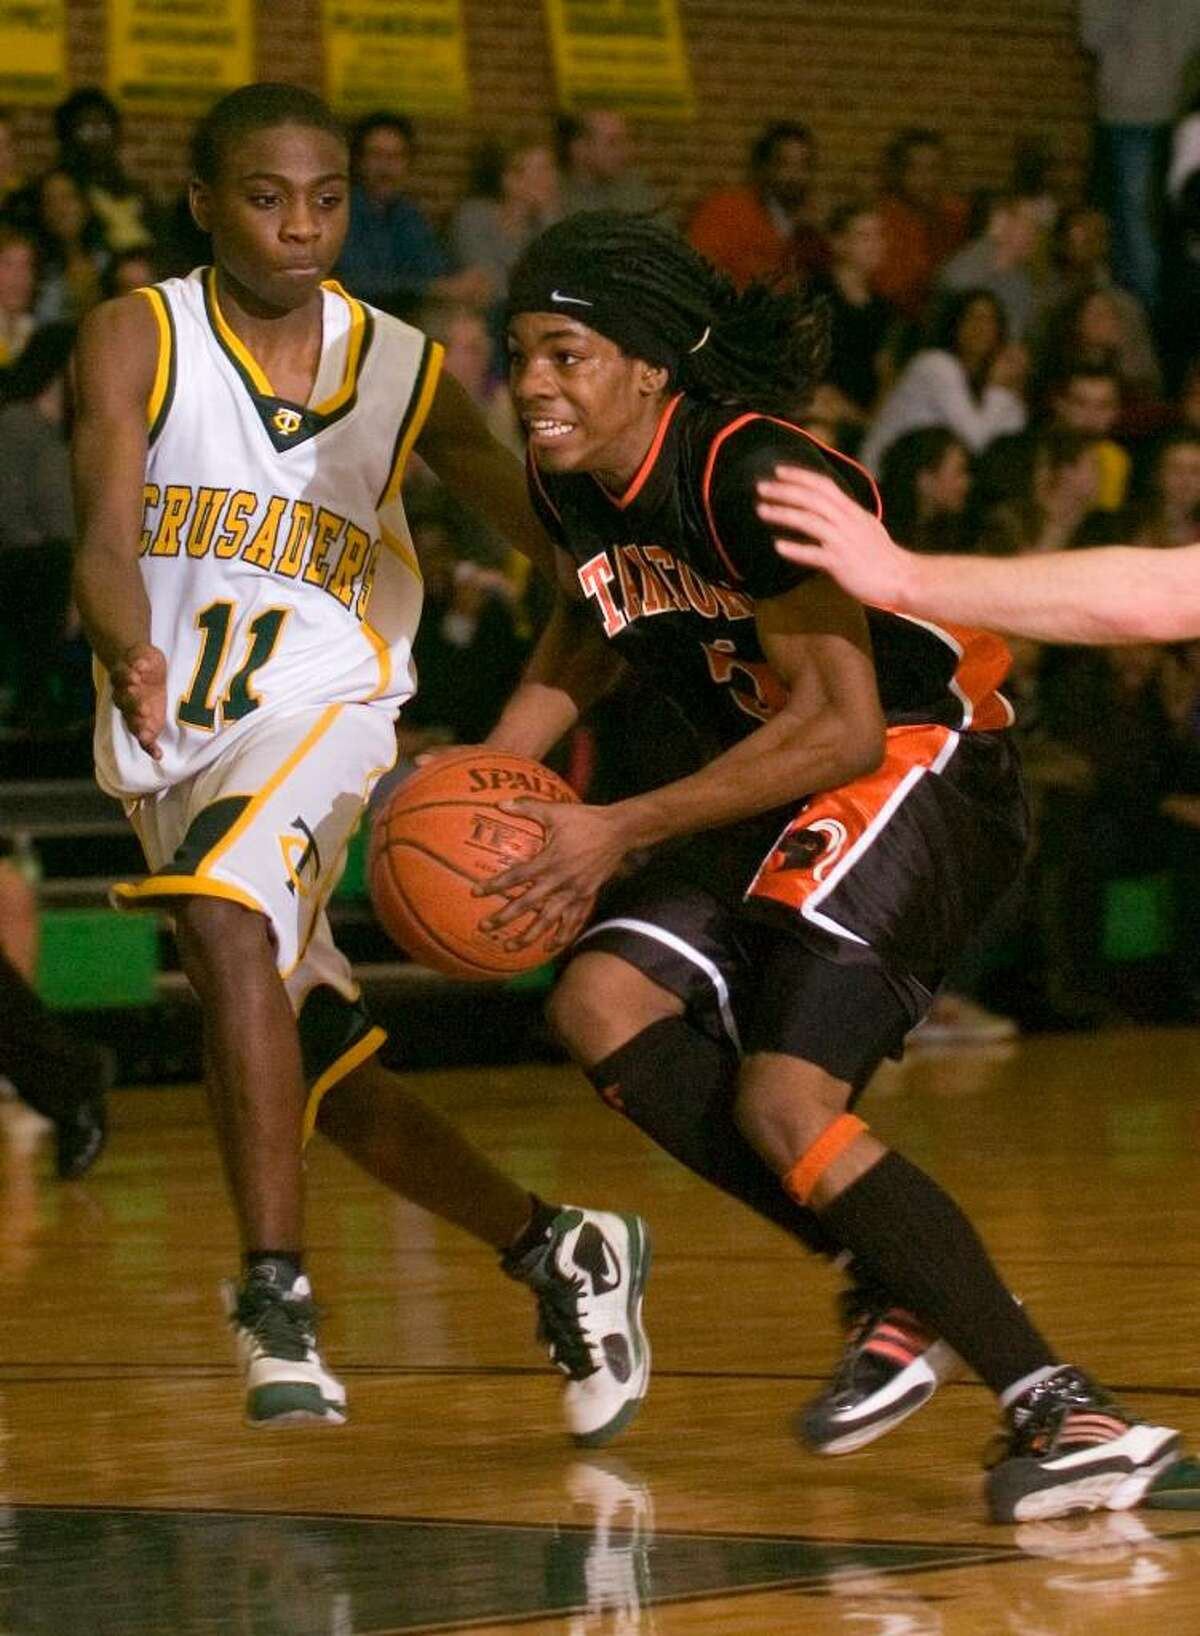 Stamford's Jakai Wilson, right, tries to get around Trinity's Schadrac Casimir, left, during an FCIAC boys basketball game at Trinity Catholic High School in Stamford, Conn. on Tuesday, Feb. 9, 2010.